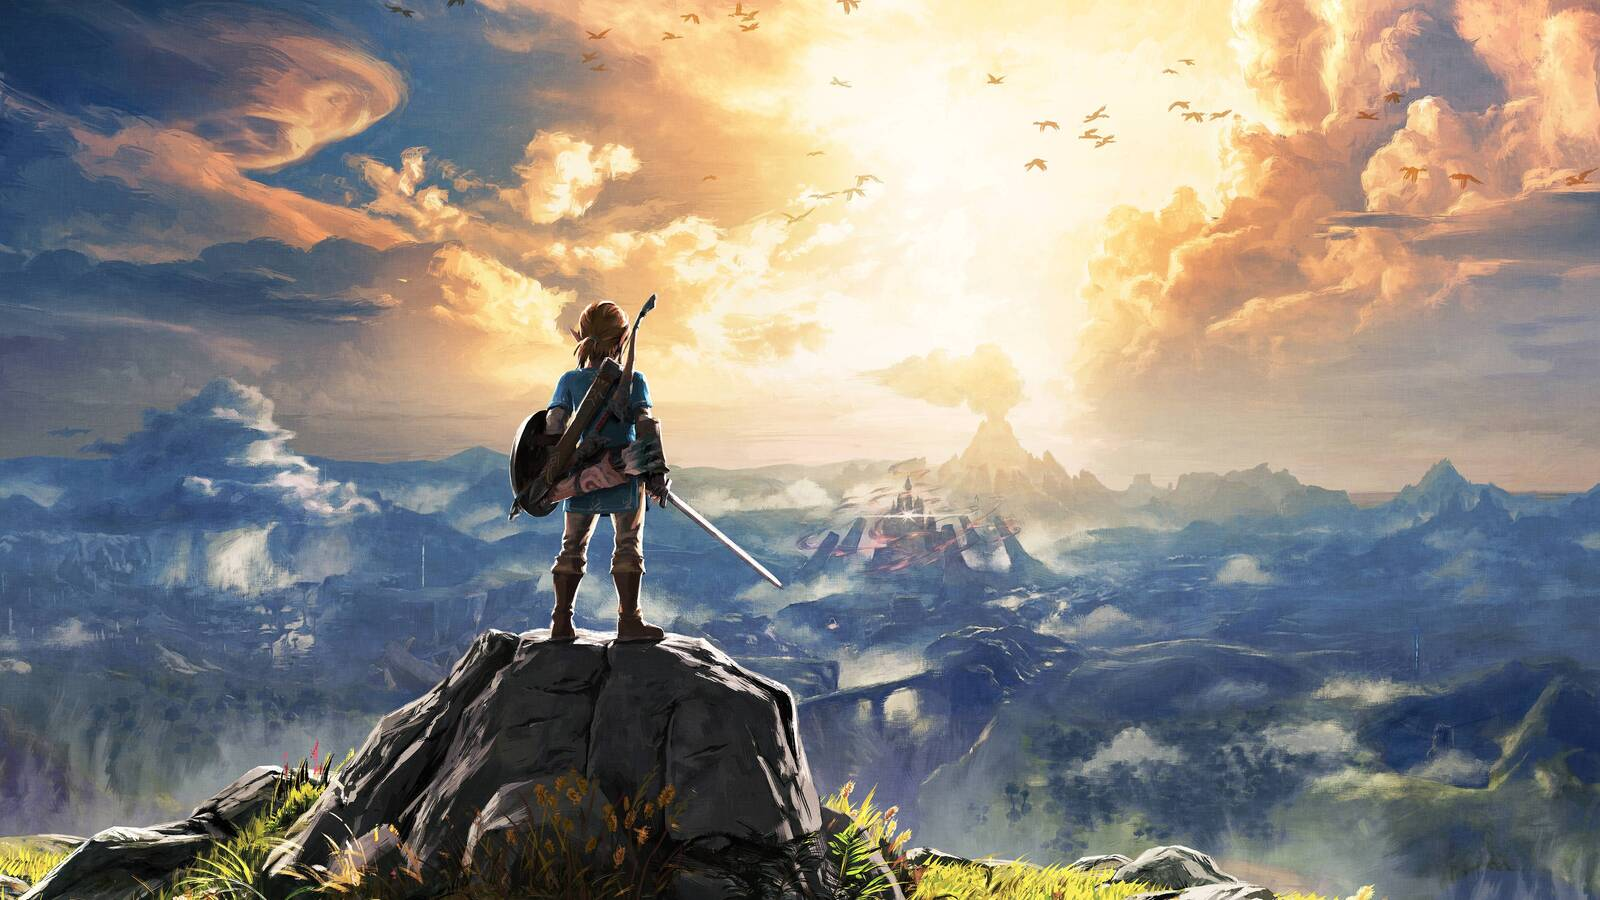 1600x900 the legend of zelda breath of the wild 4k 1600x900 resolution hd 4k wallpapers images - Wallpapers 1600x900 ...